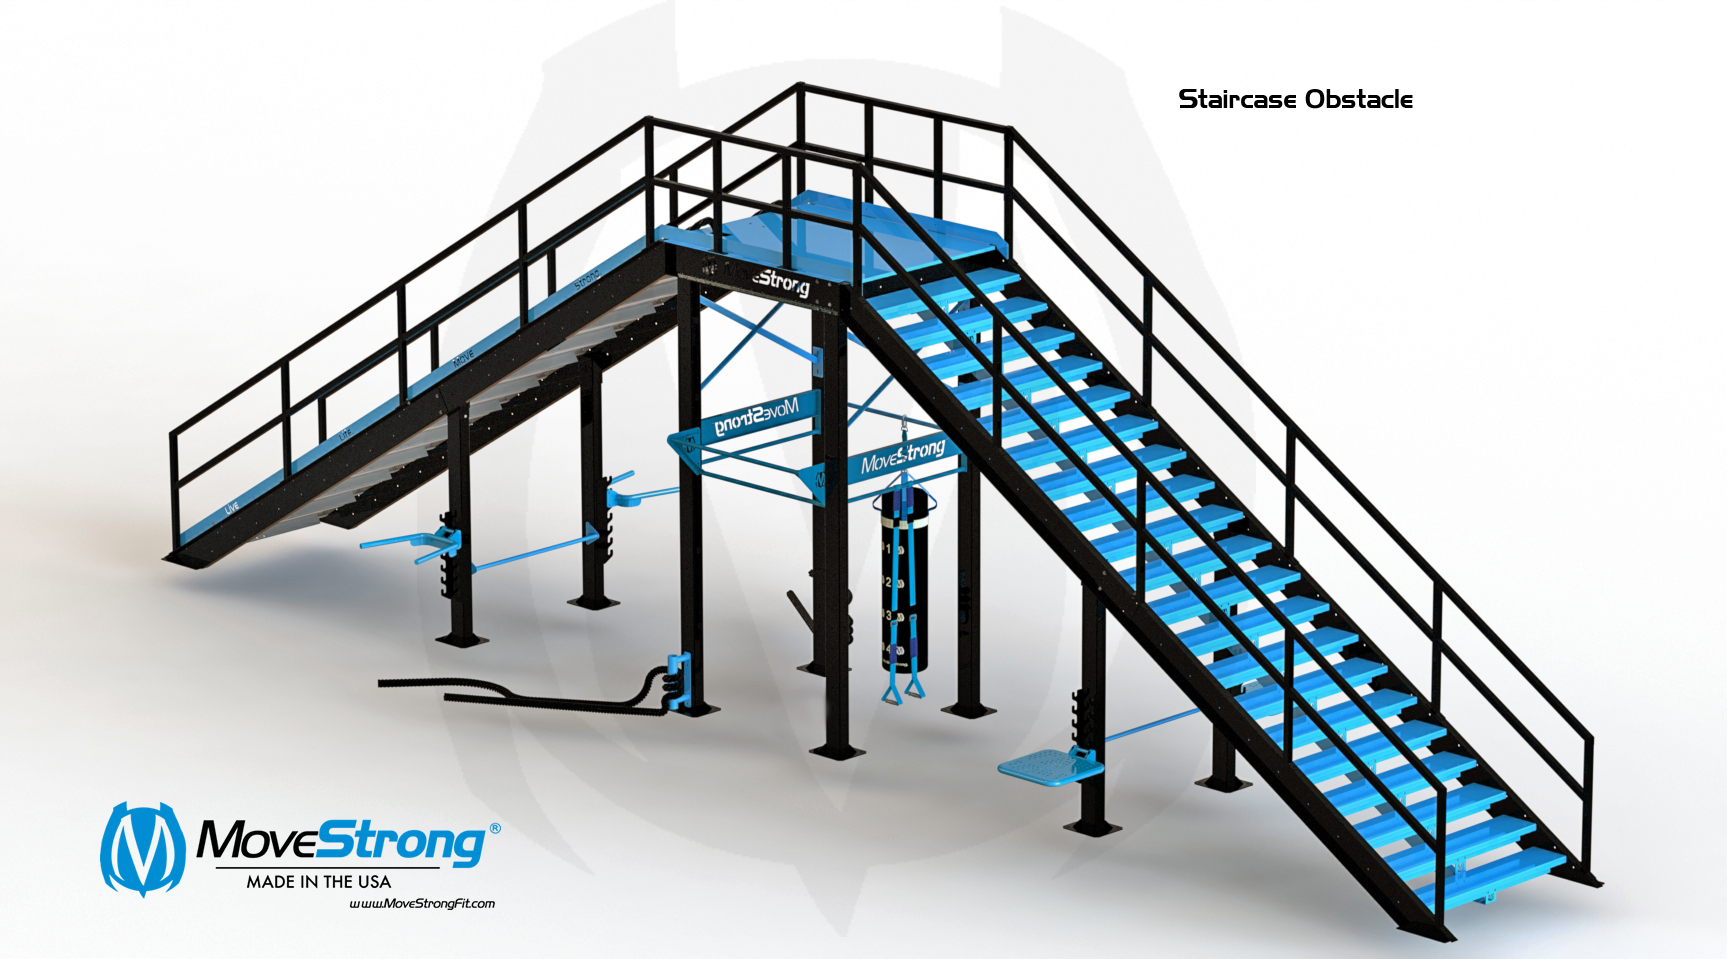 Copy of Obstacle Staircase